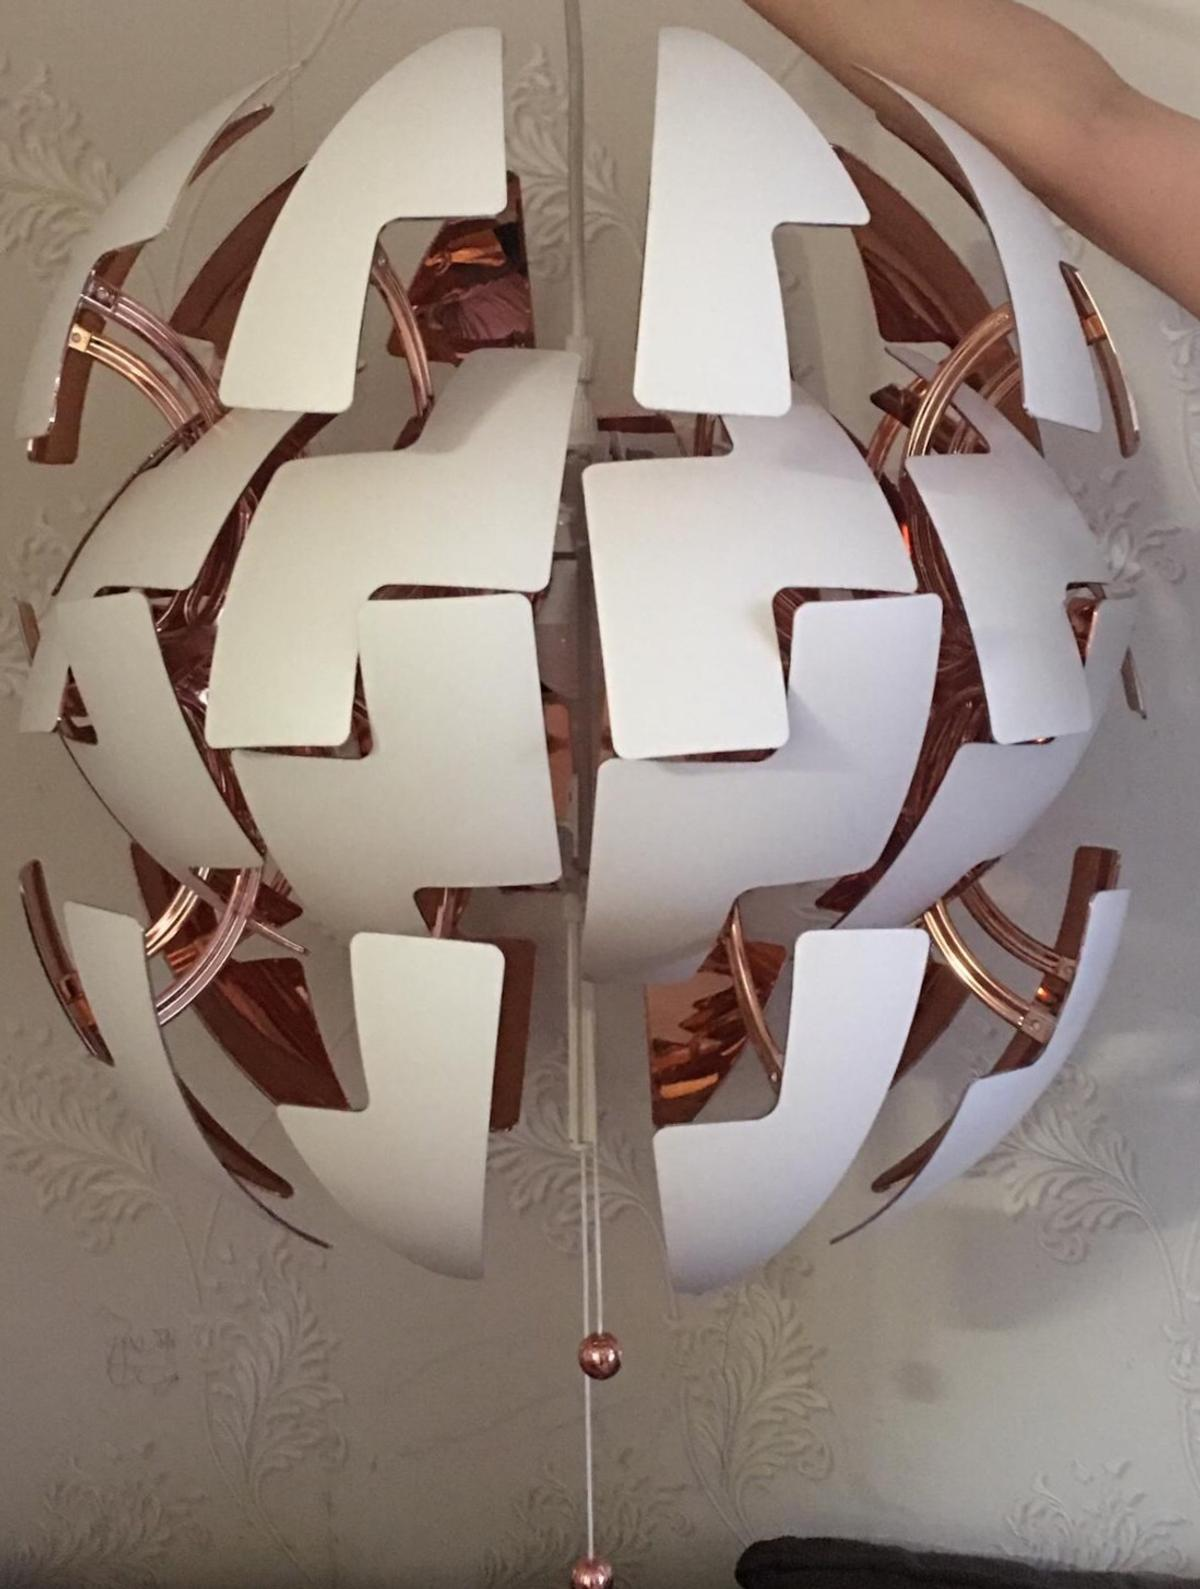 Ikea Pendant Lamp White And Copper In B29 Birmingham For 40 00 For Sale Shpock